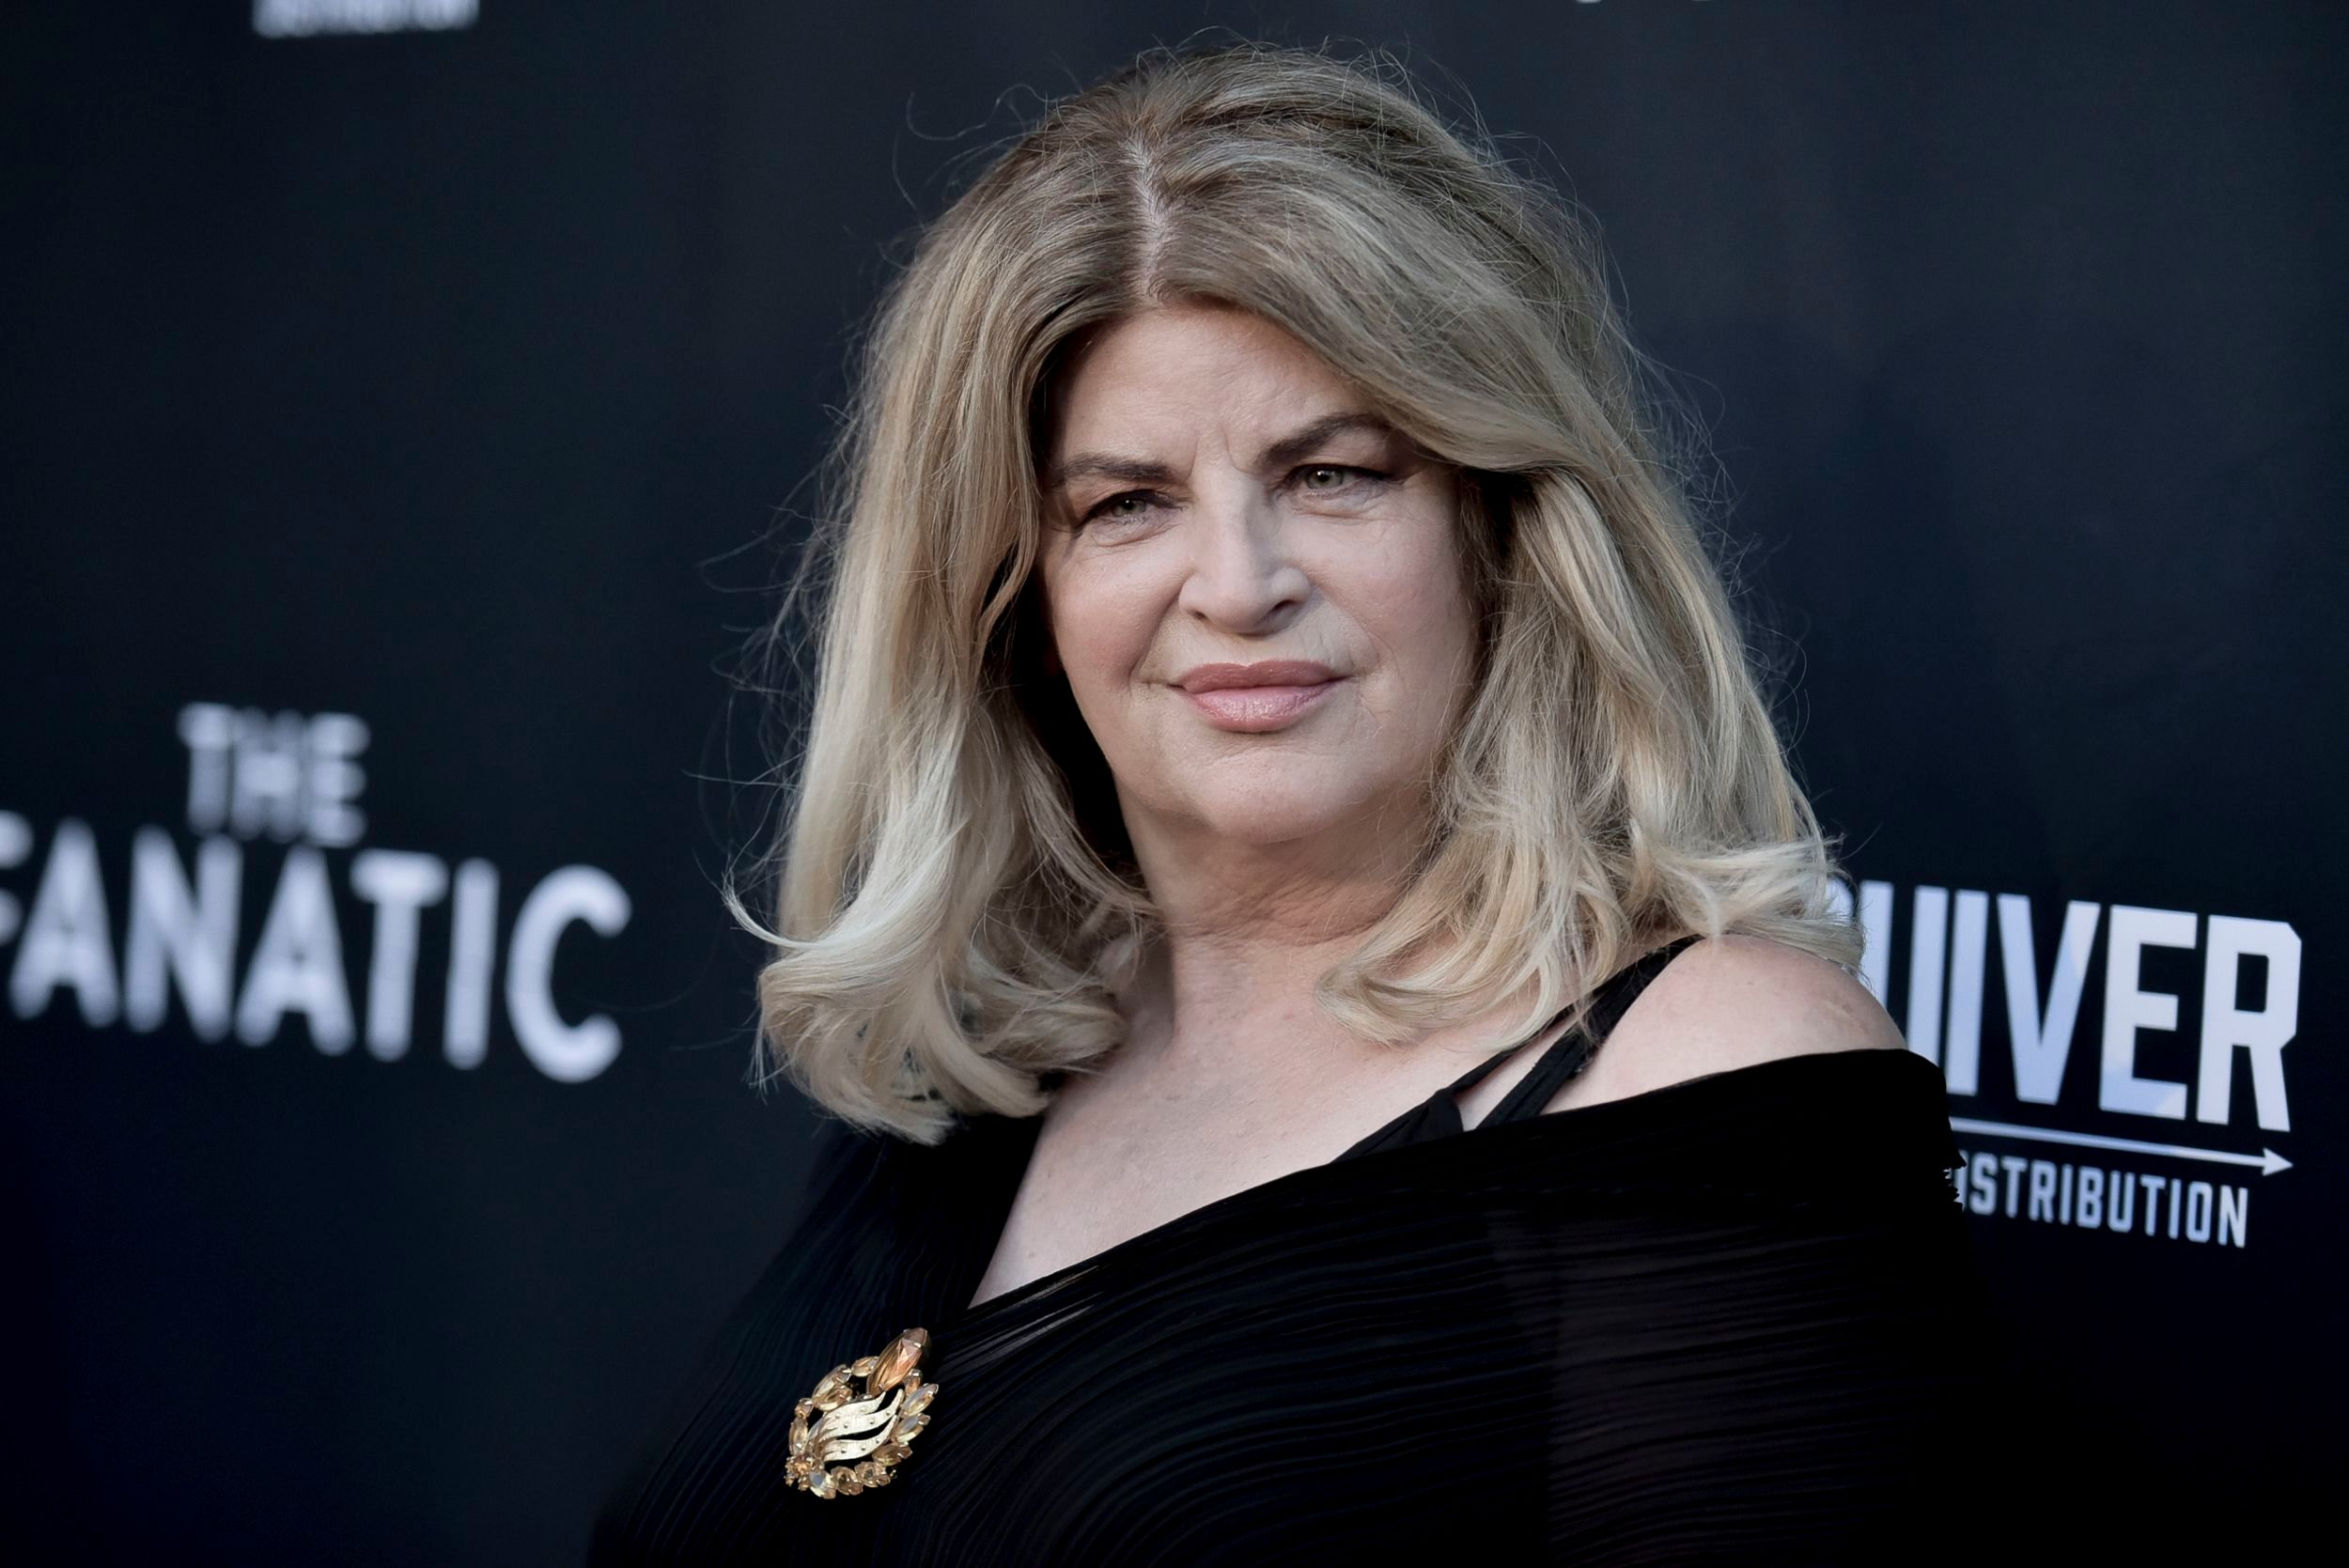 Kirstie Alley Gifts Flowers To Herself For Quitting Drugs